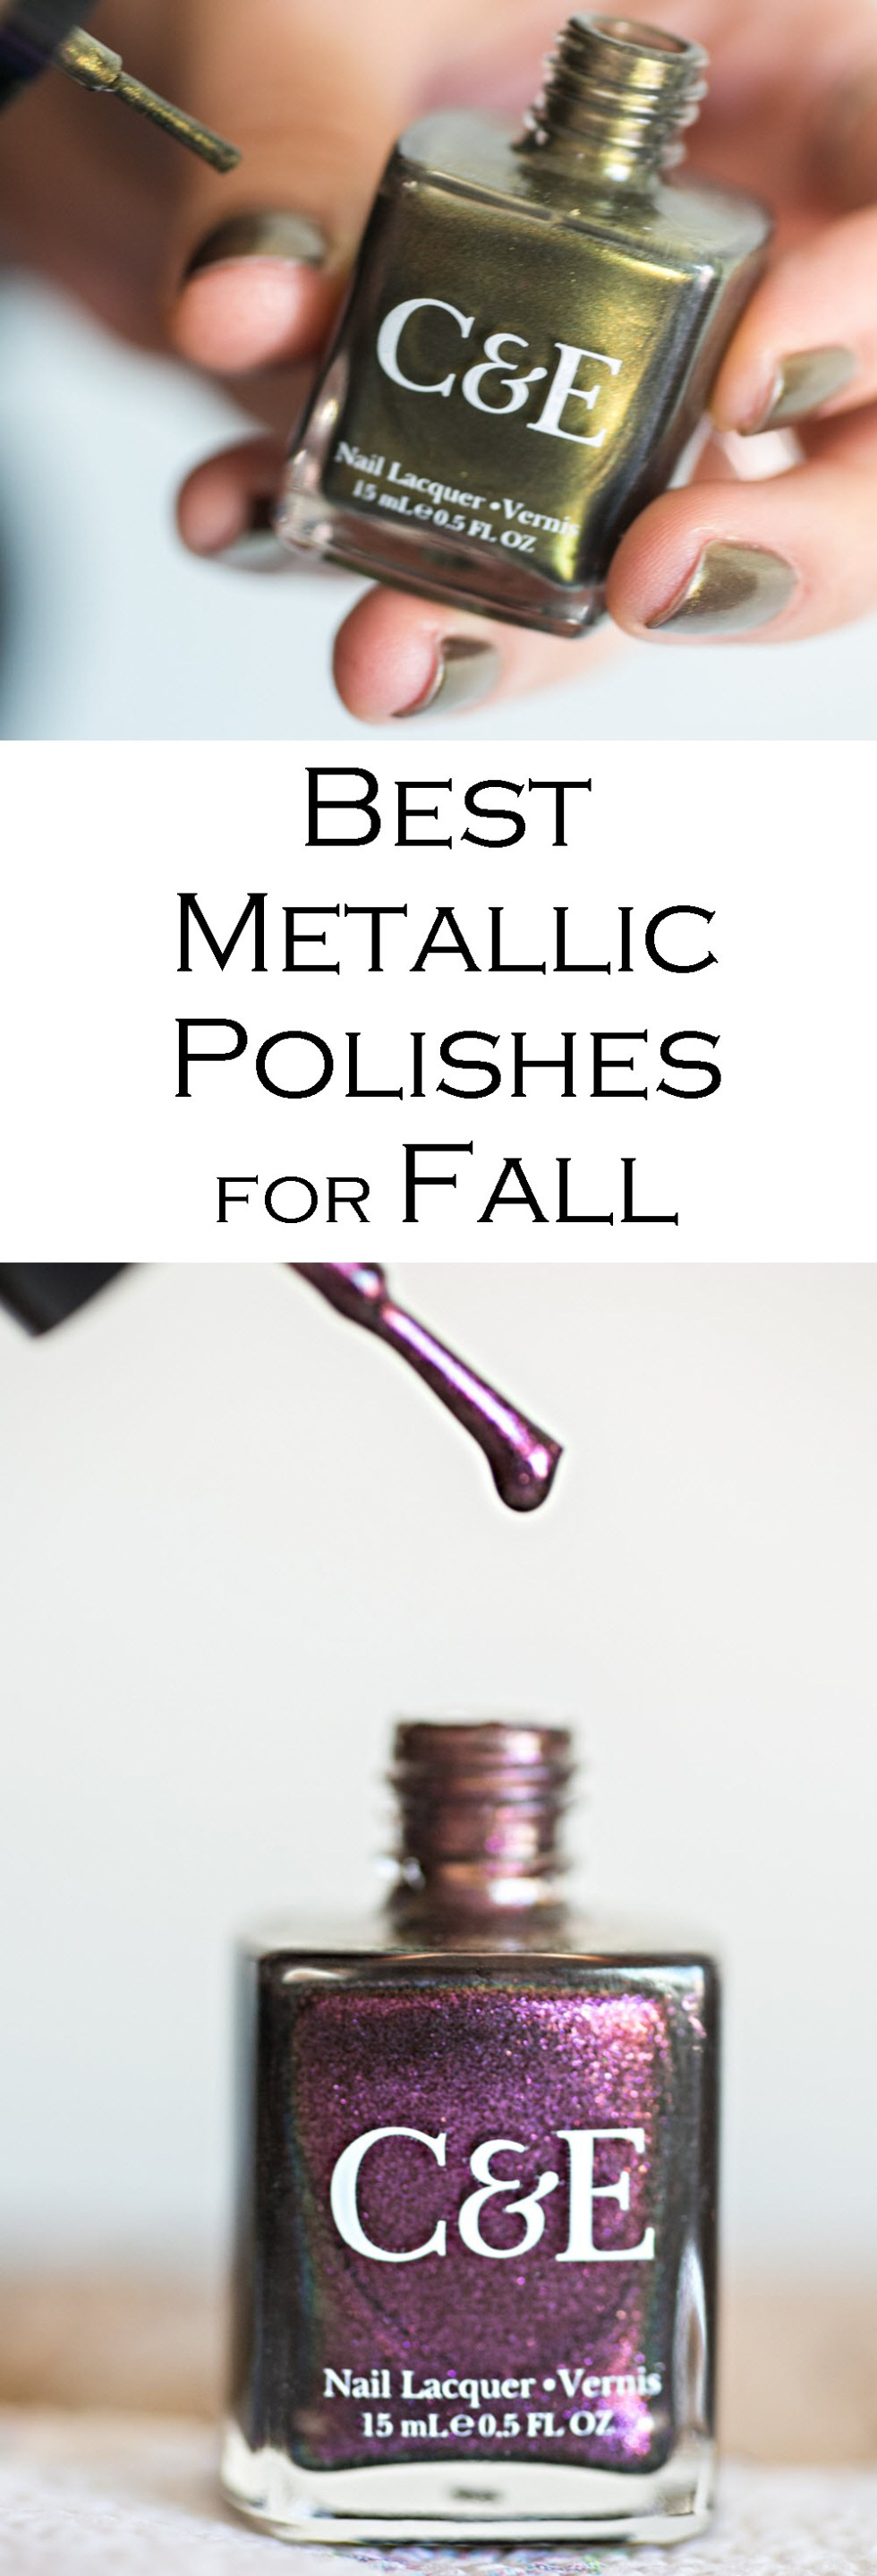 Best Metallic Nail Polishes for Fall - Crabtree & Evelyn Nail Polish Review